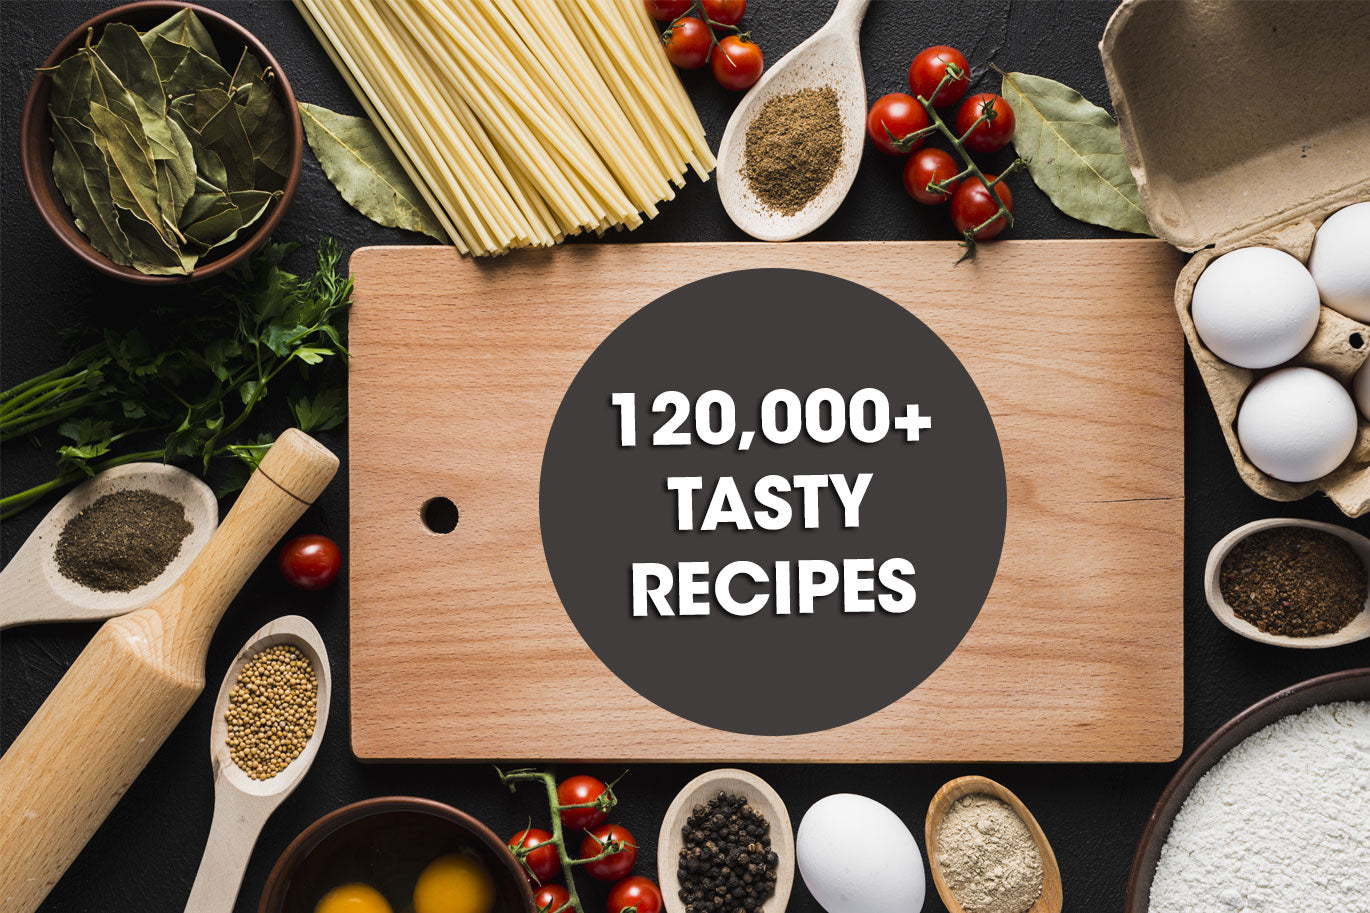 I will give plr articles and ebooks on 120,000 recipes